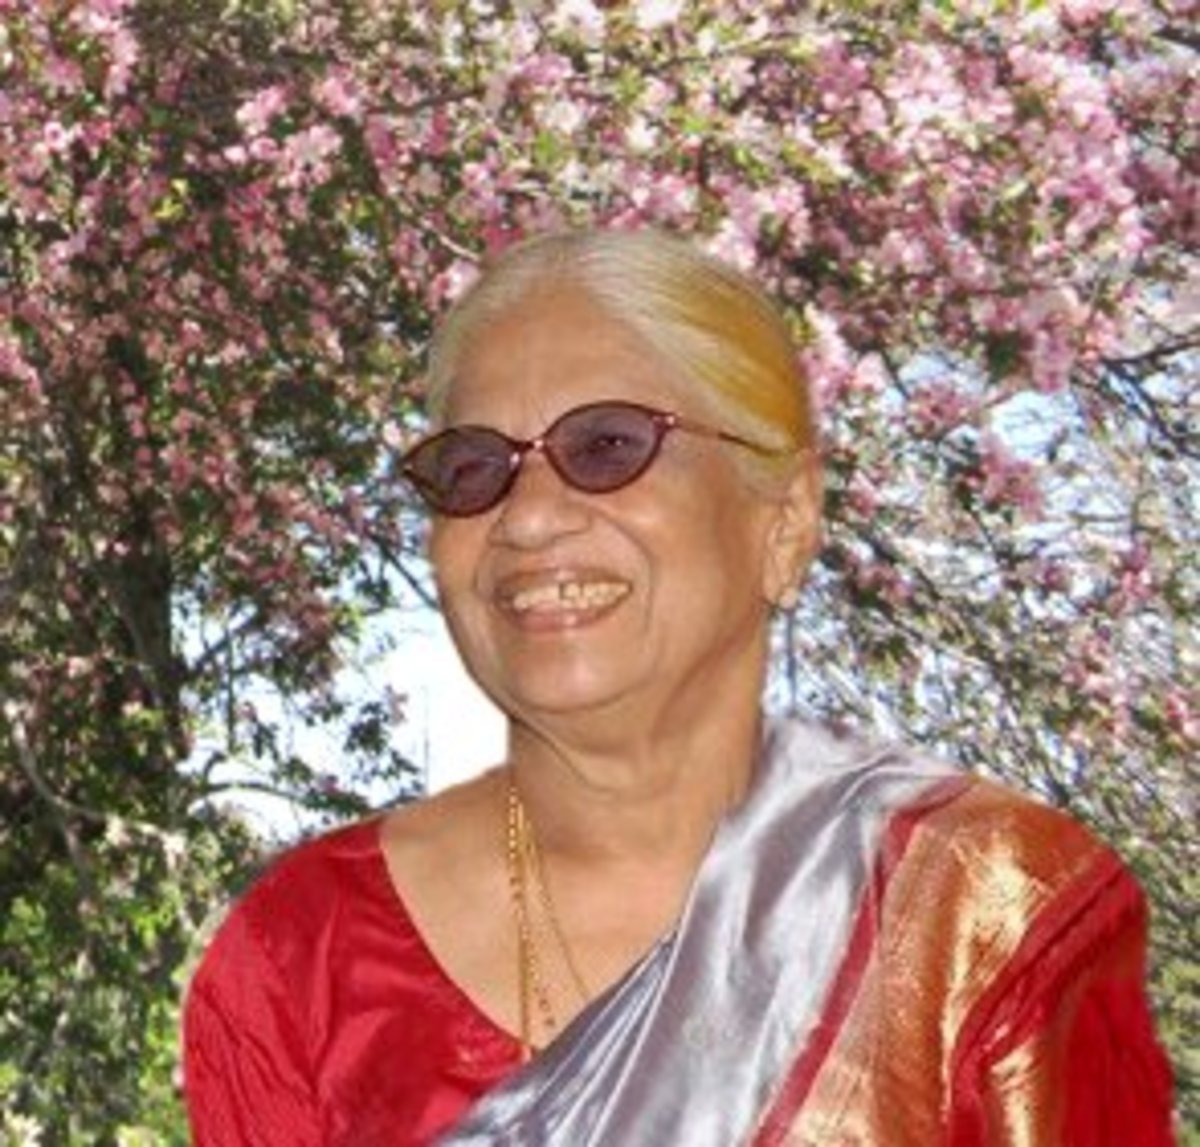 A Tribute to My Mother - A Woman of Courage